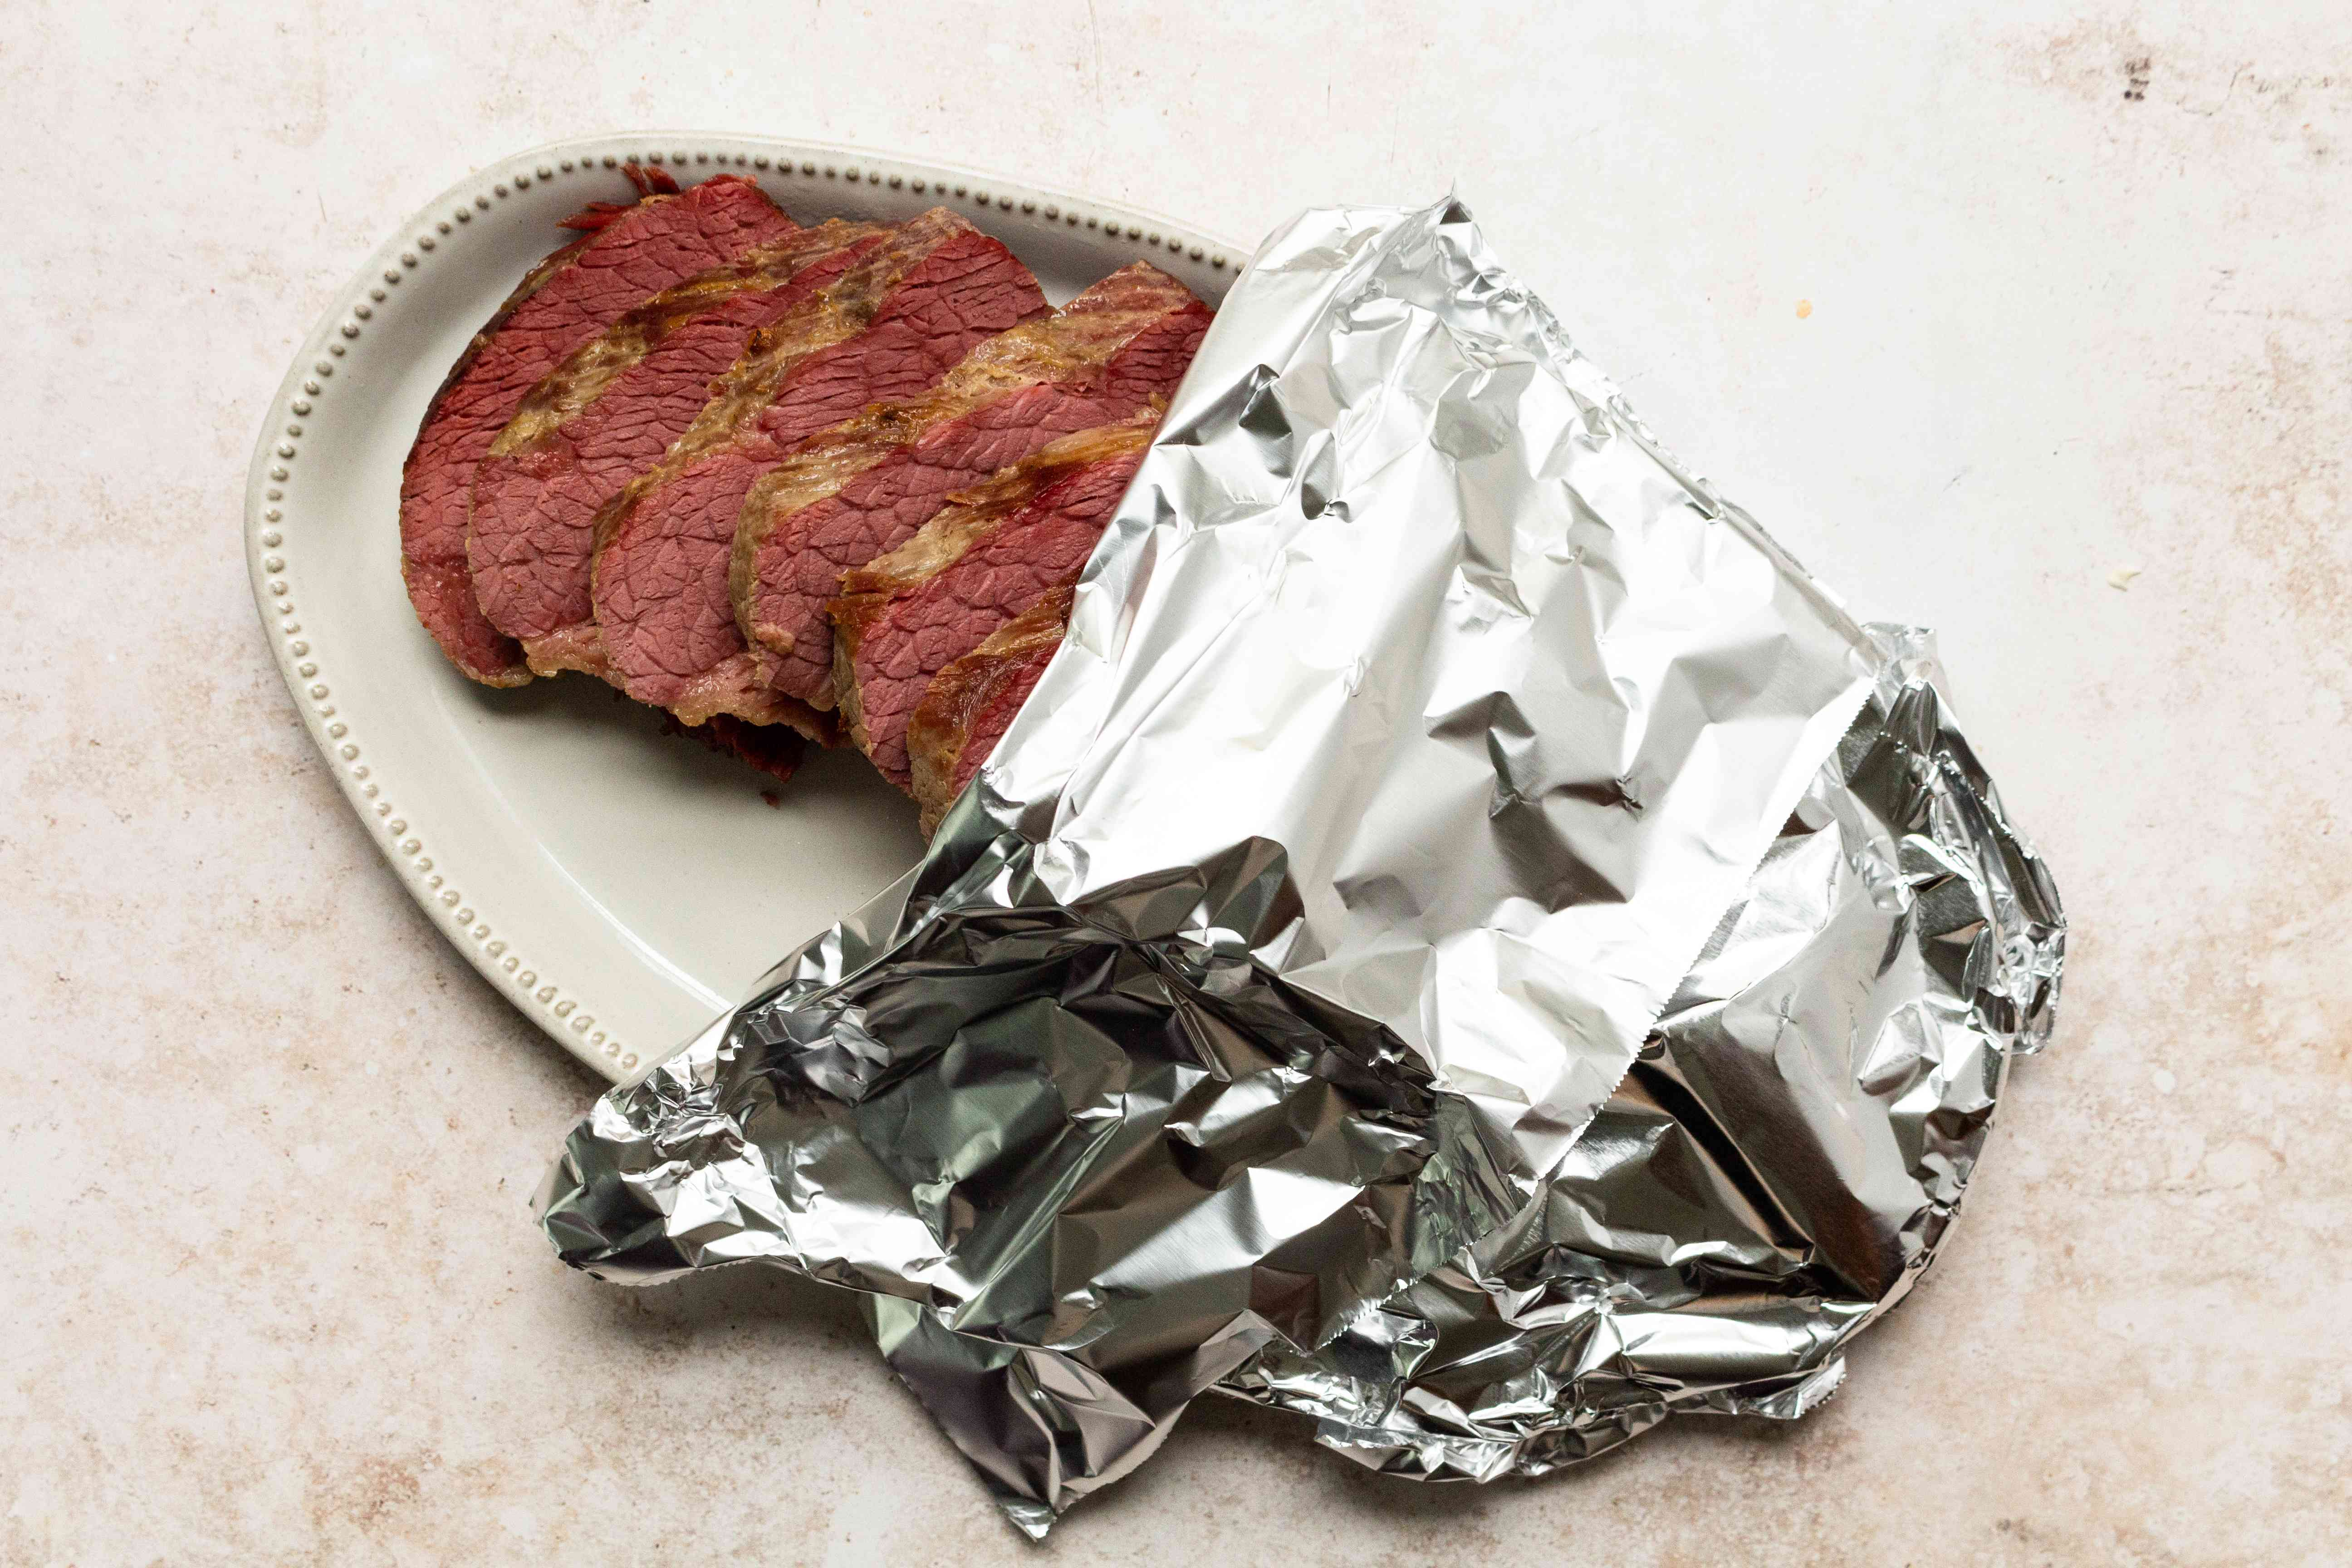 beef on a platter, with aluminum foil